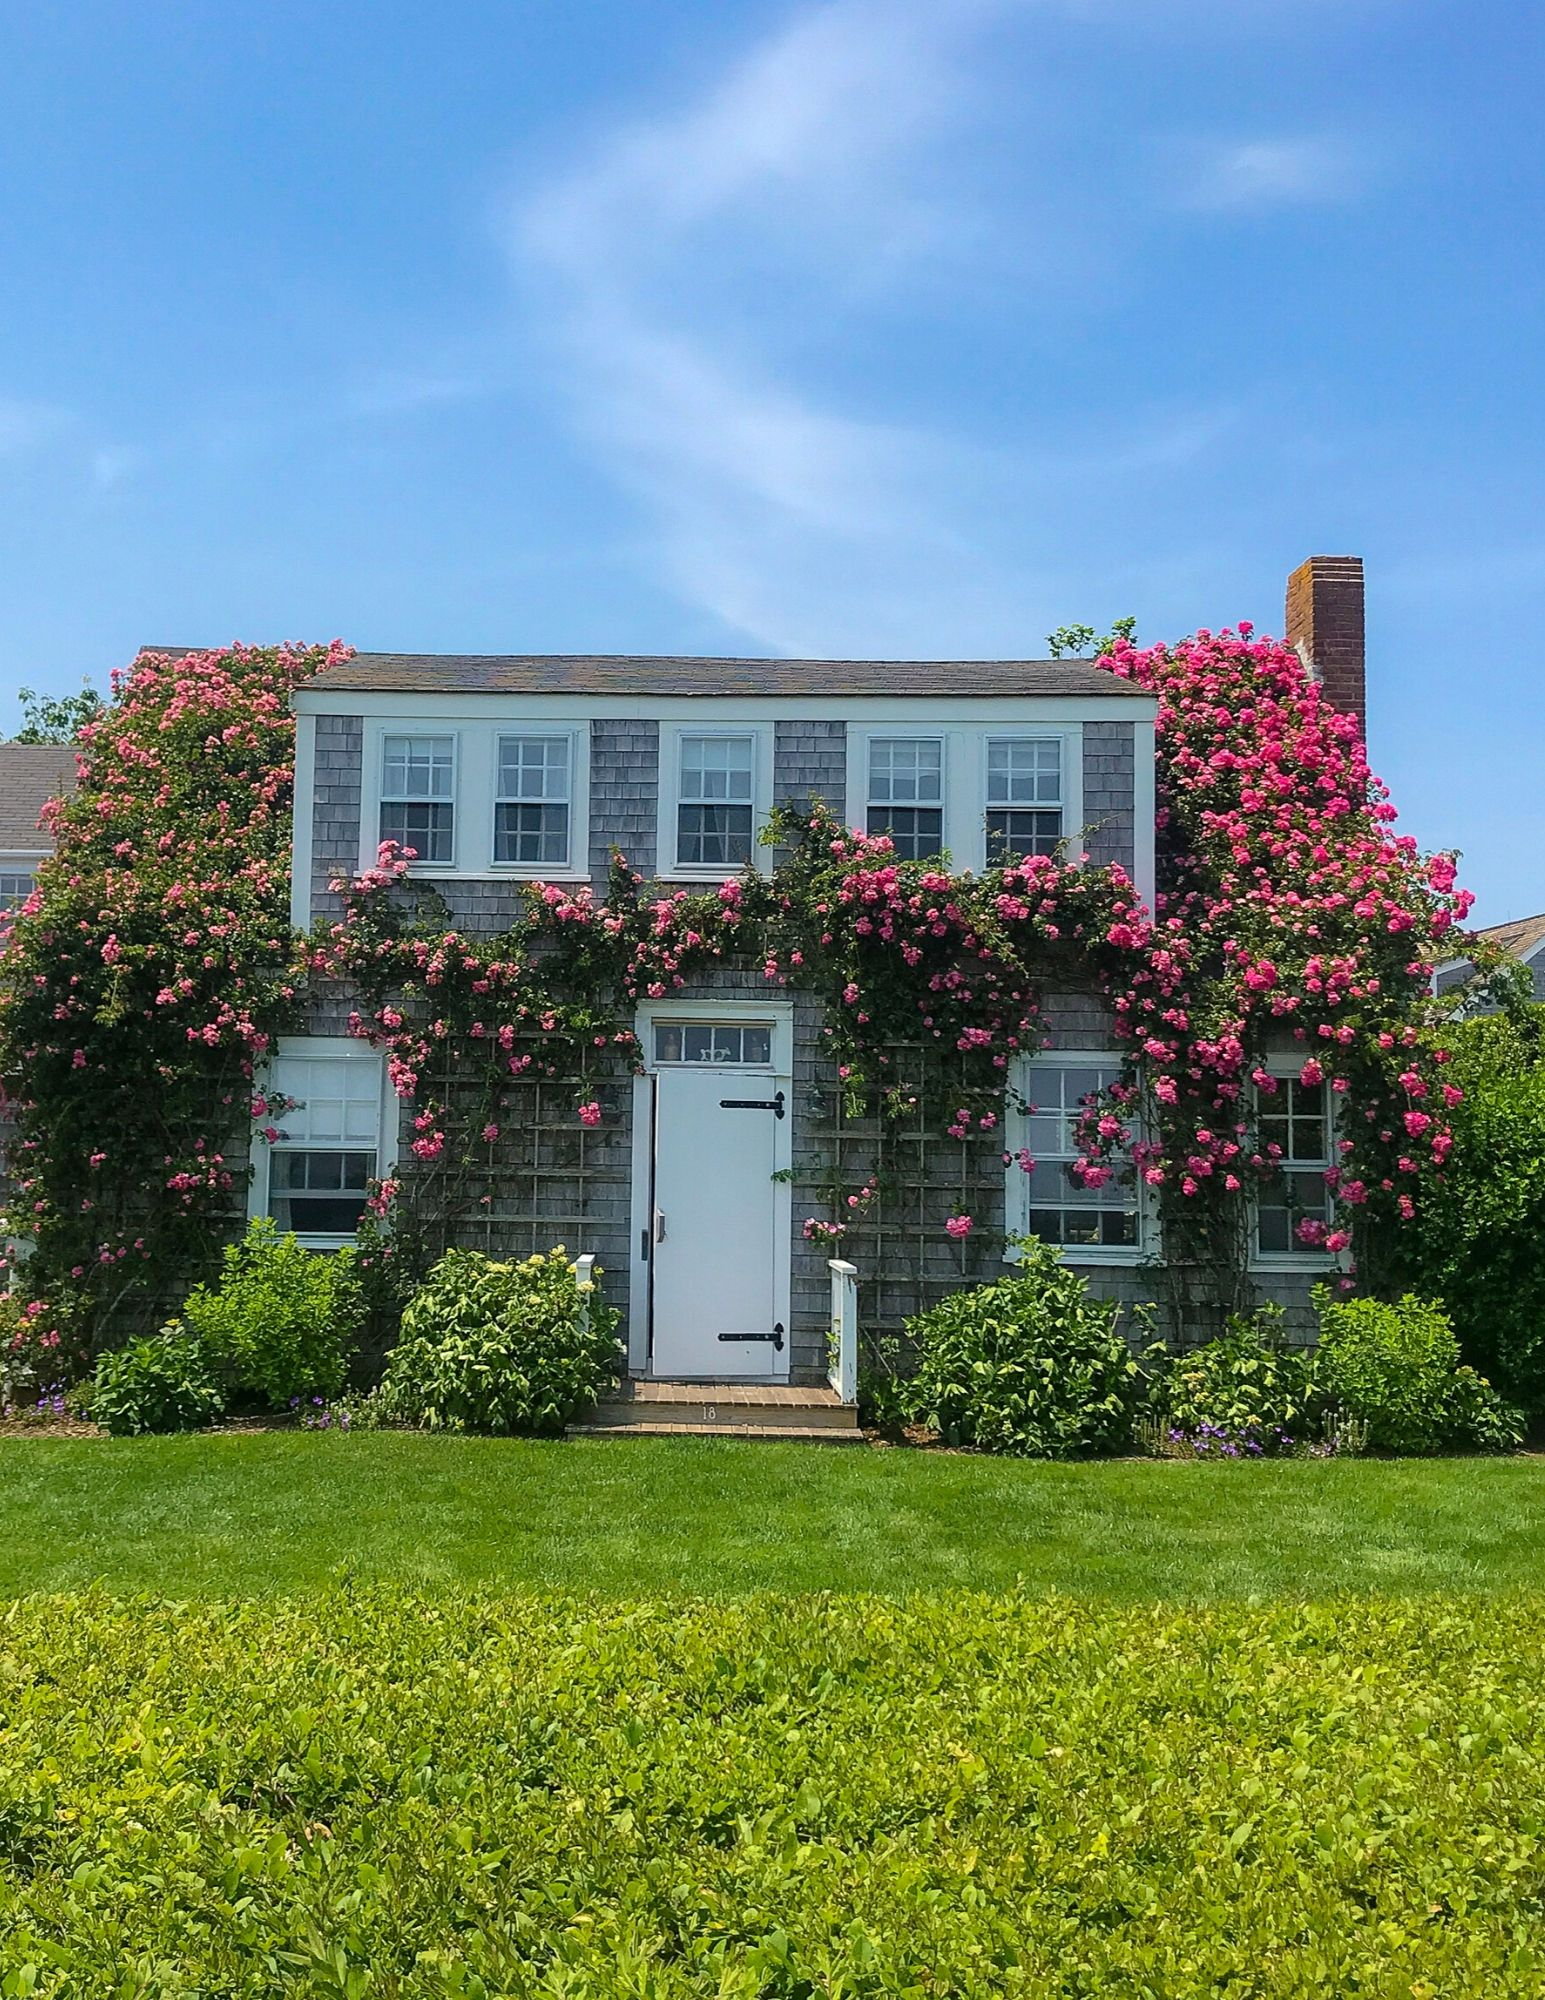 Nantucket Rose Covered Cottages in Sconset-6